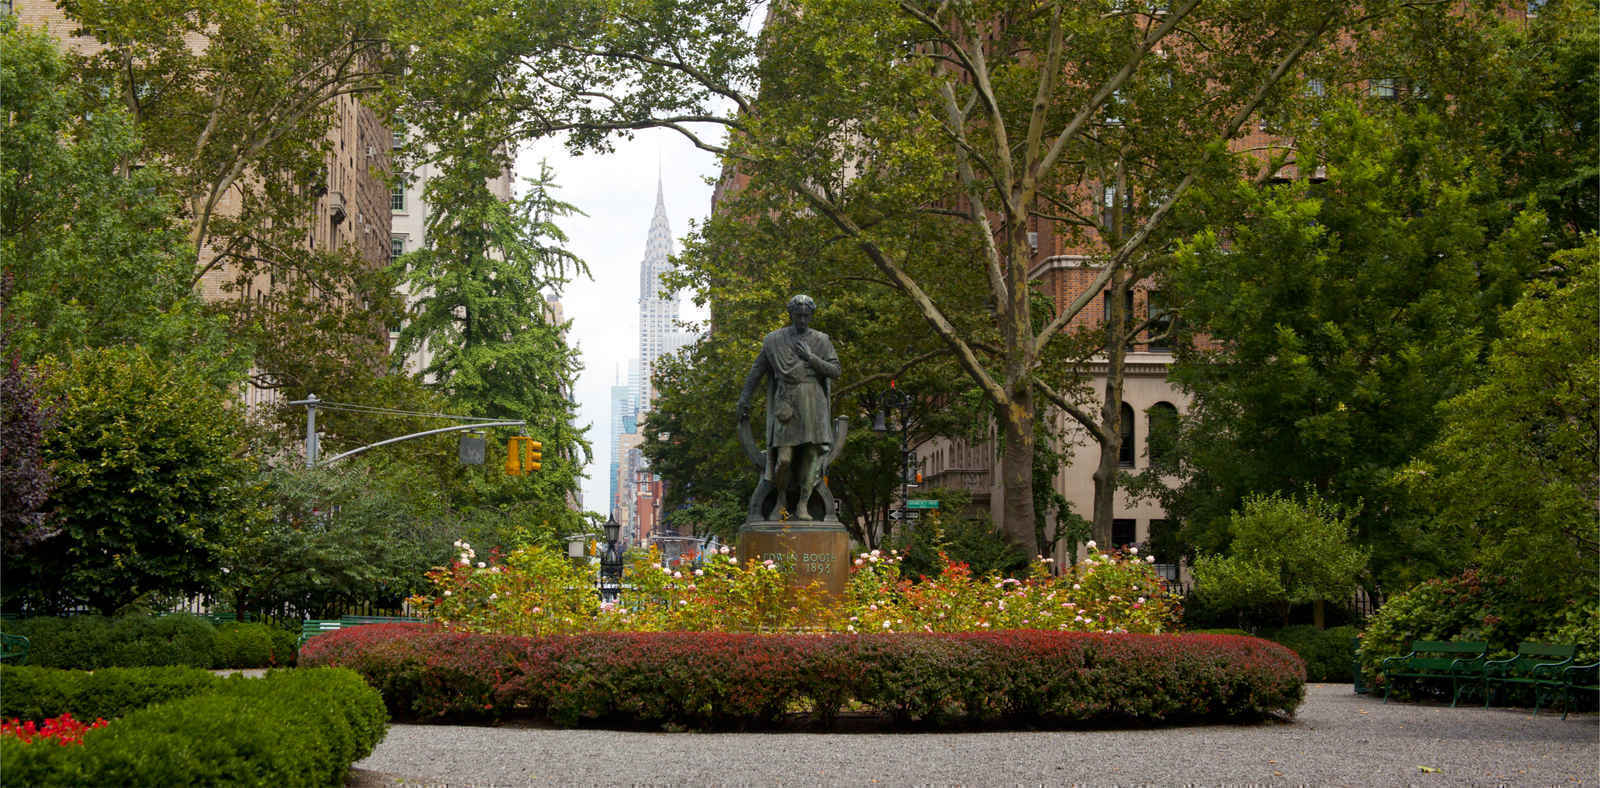 Gramercy Park in Manhattan, New York